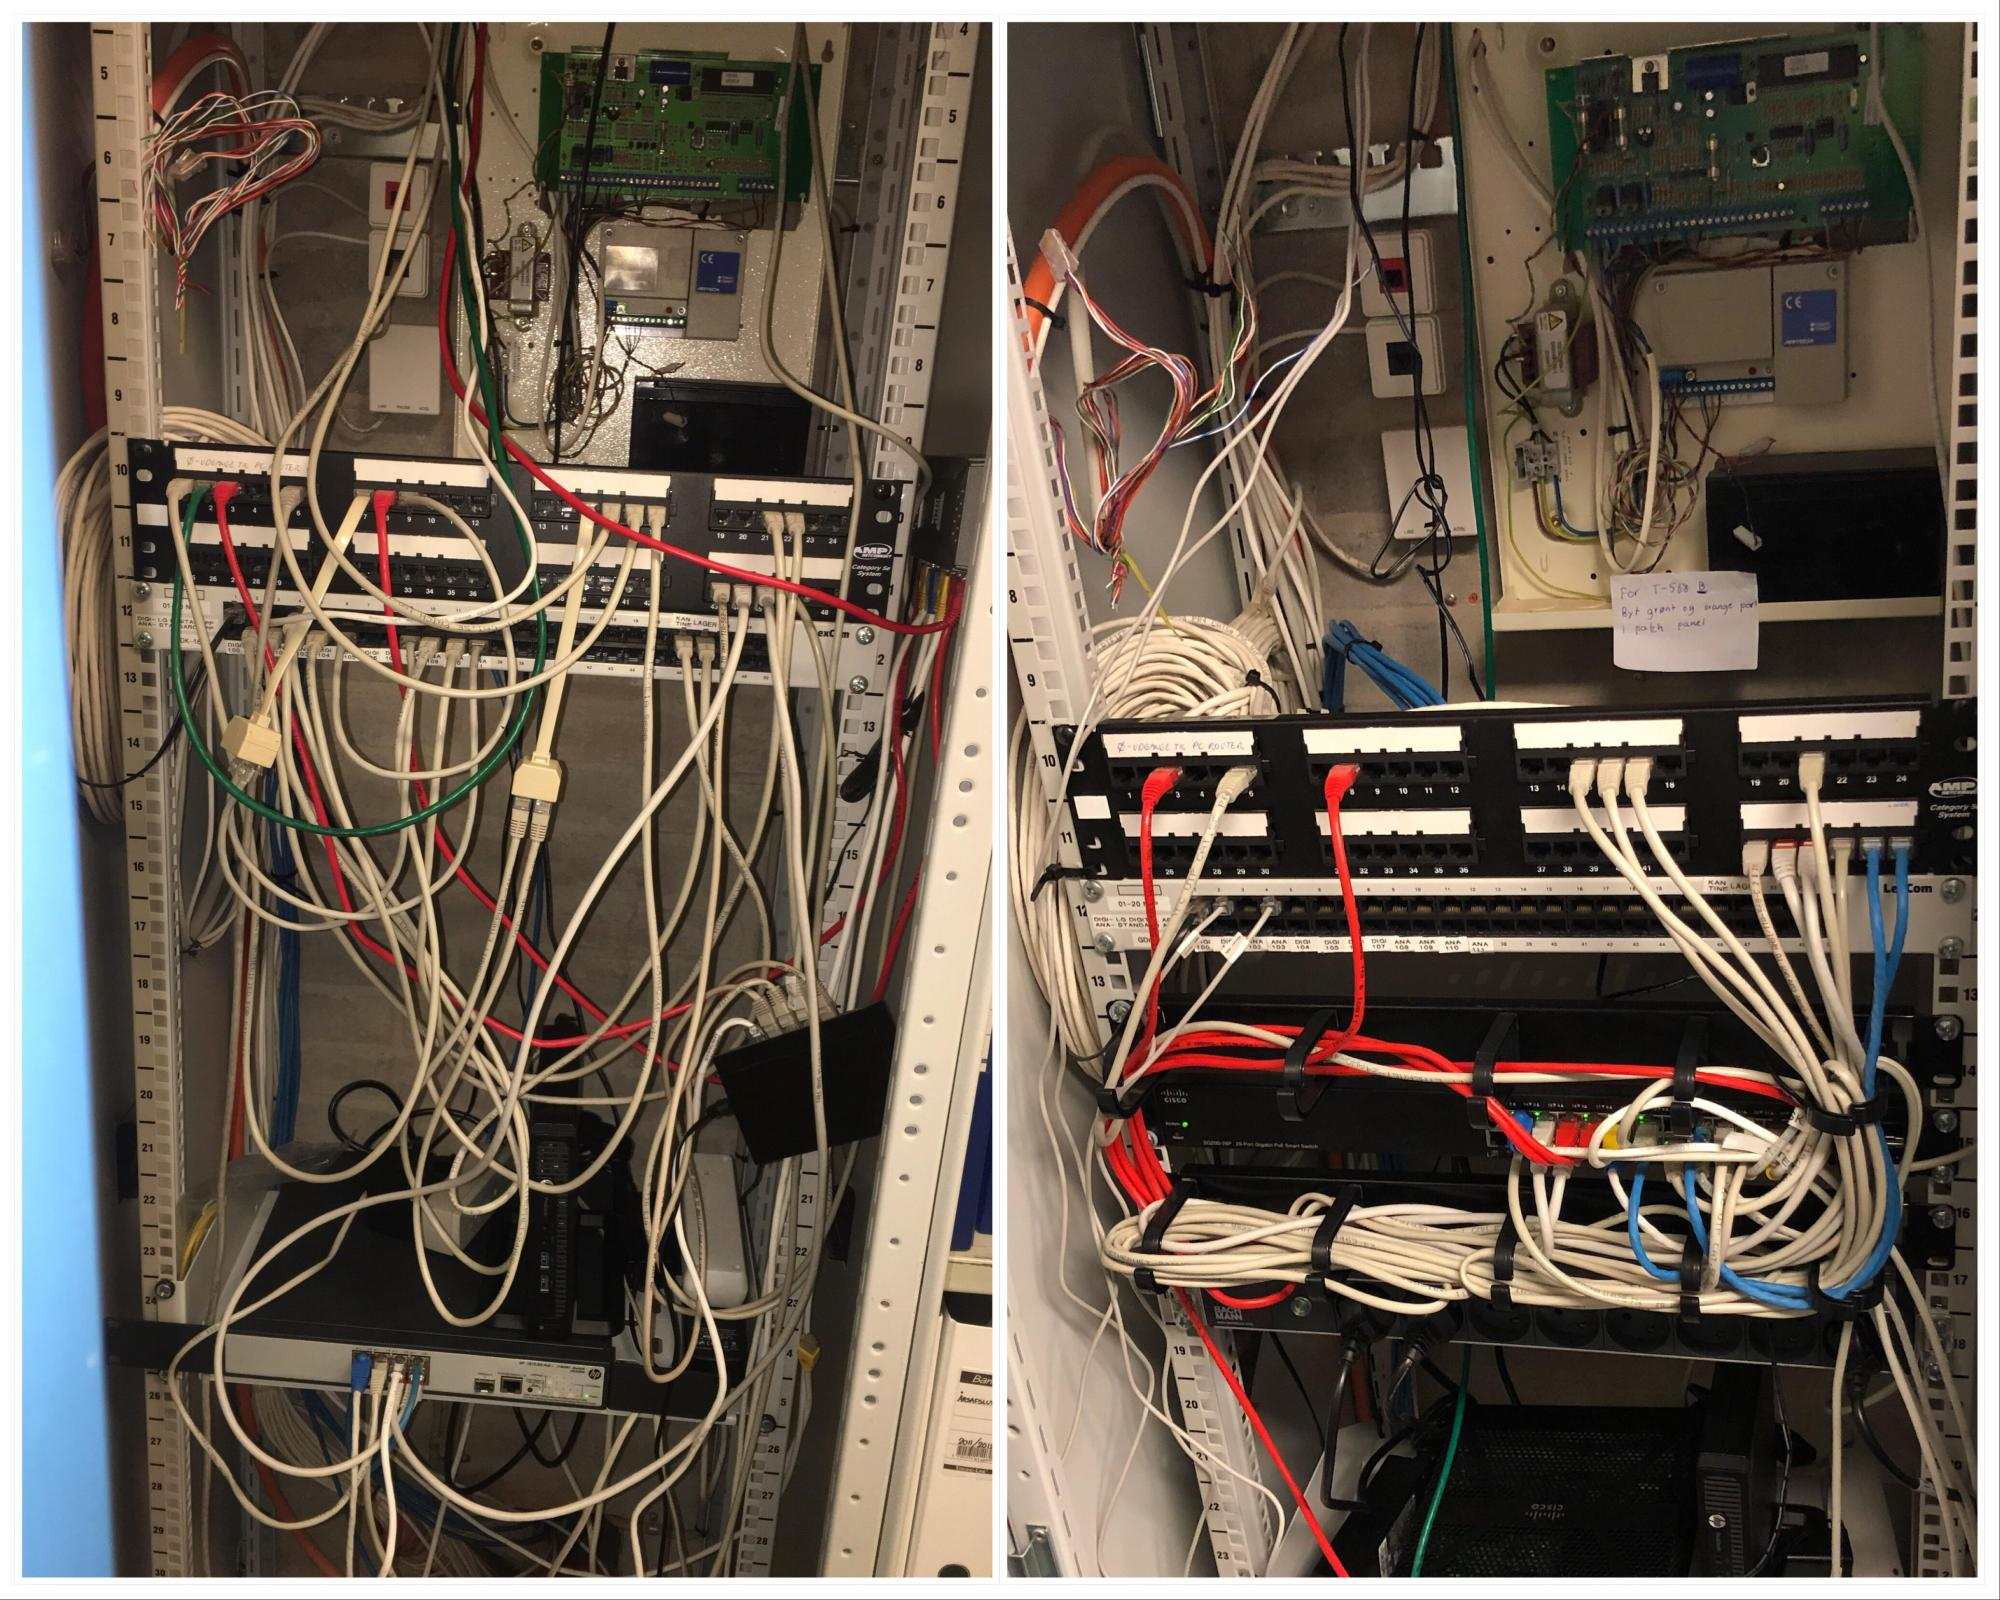 hight resolution of wiring closet before wiring diagram for you wiring closet diagram factory network closet before and after